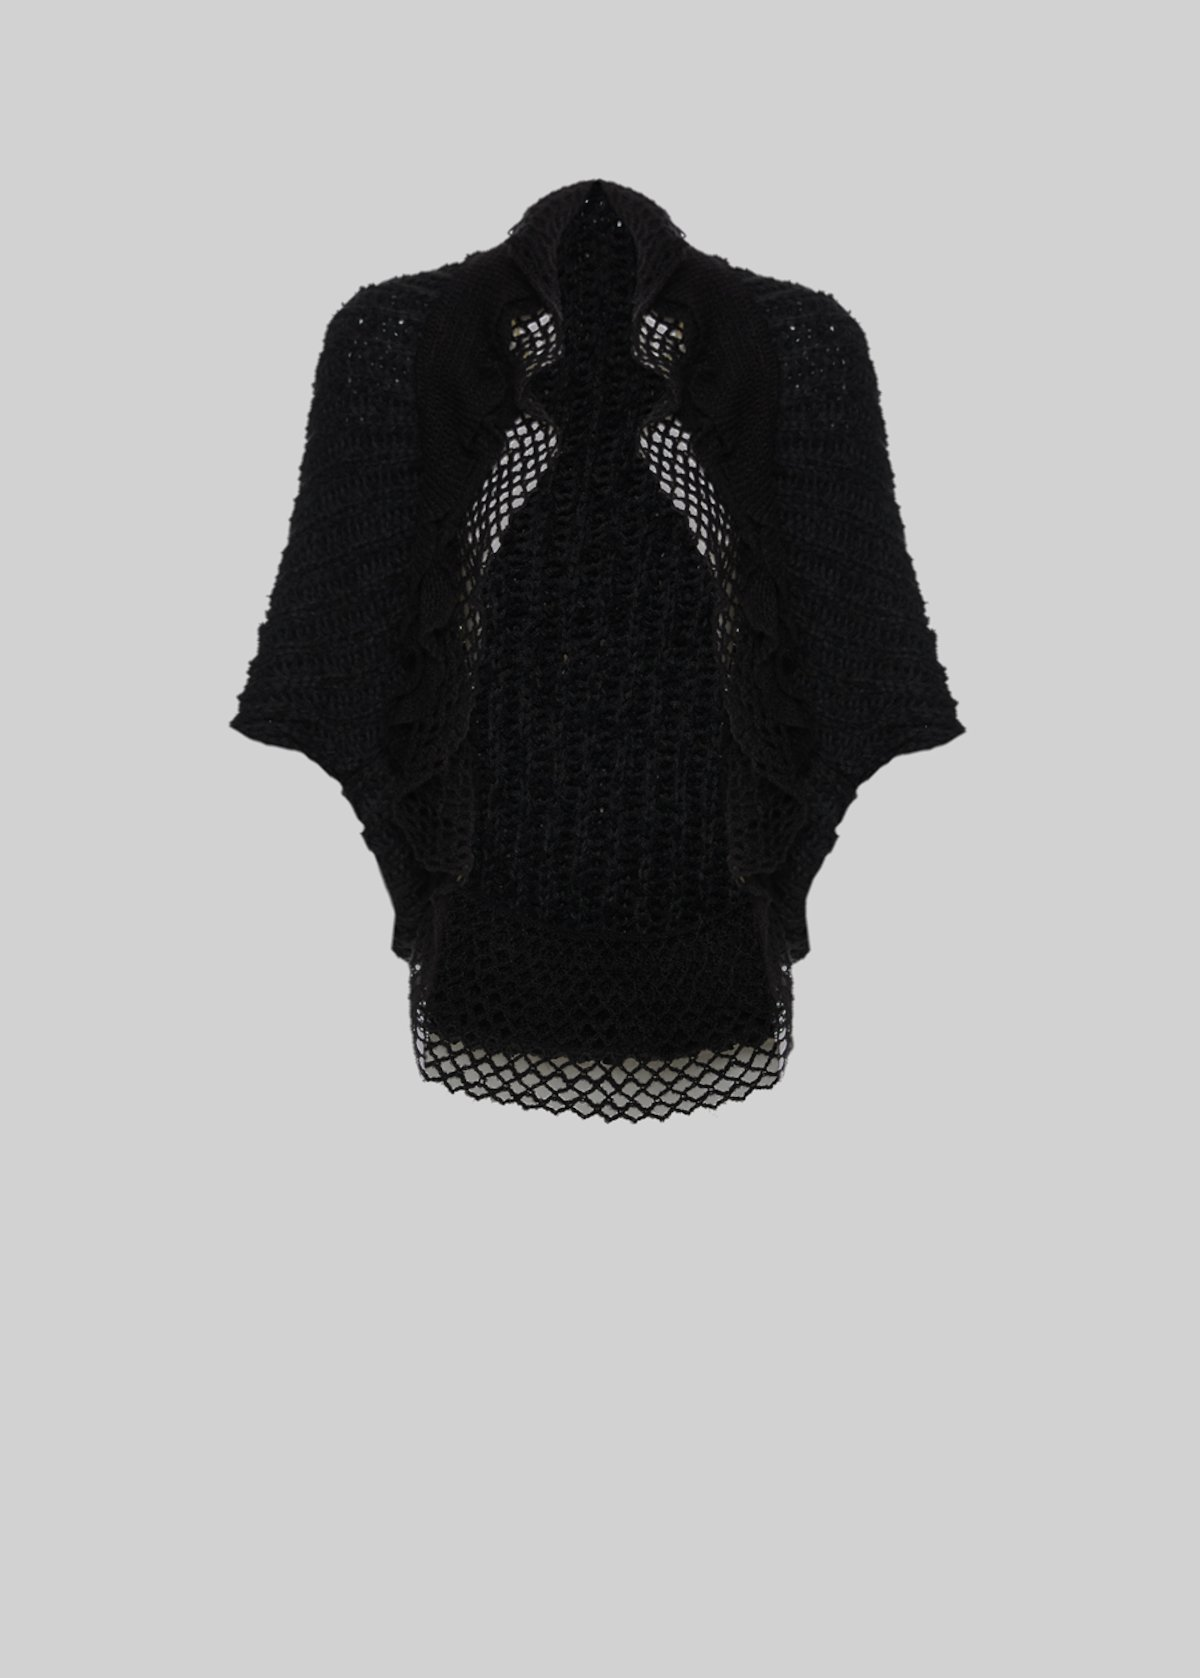 Clelia knit shrug with ruffles detail - Black - Woman - Category image